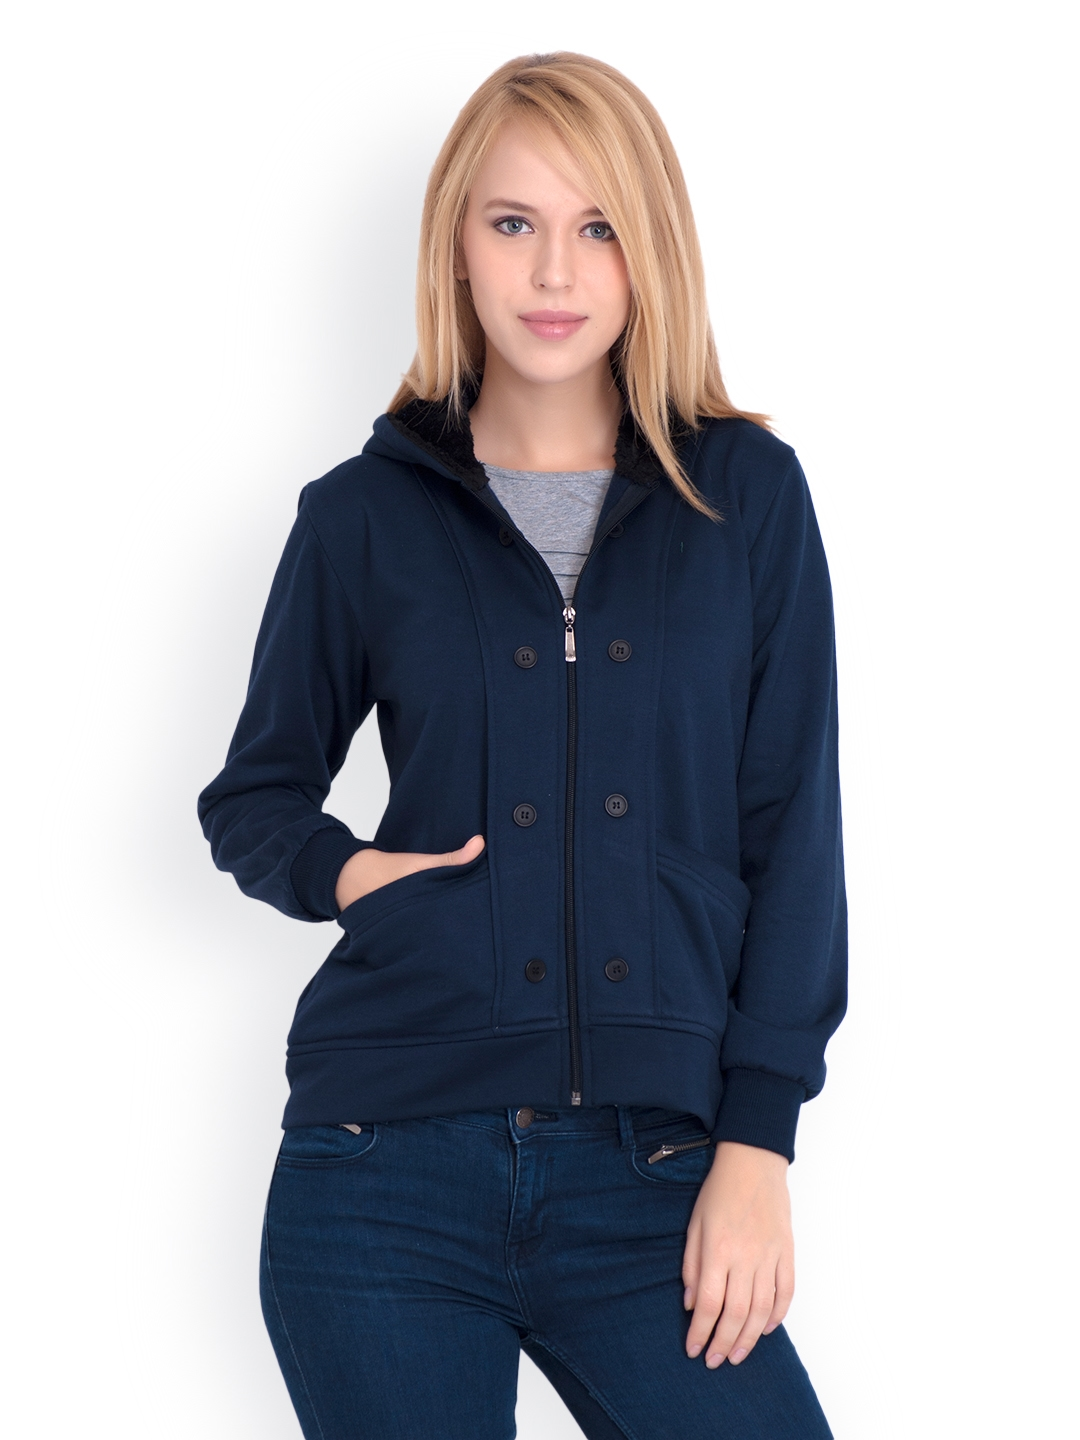 Sweatshirts for Women - Buy Ladies / Women's Sweatshirts Online